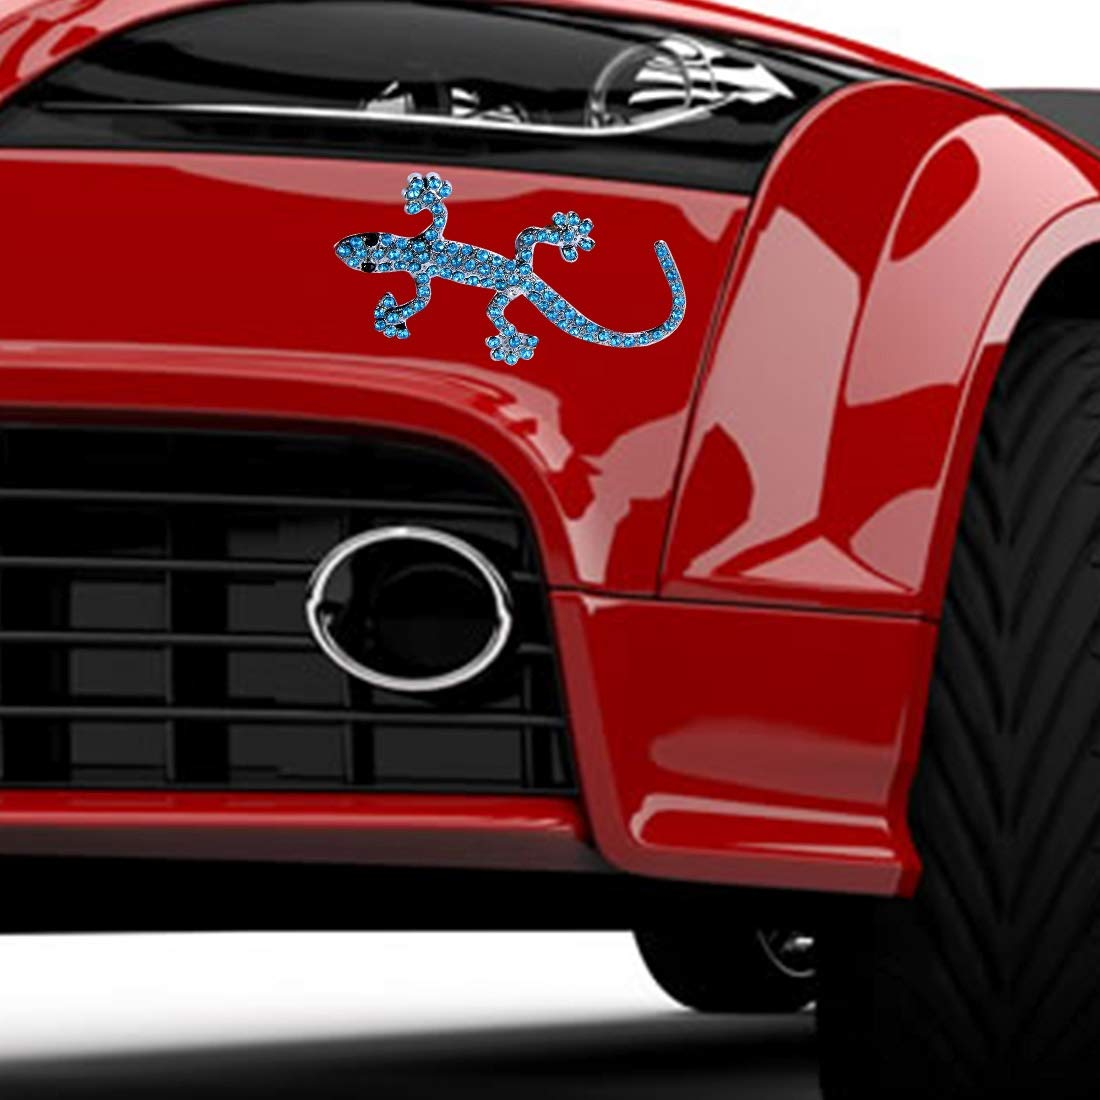 Realistic Rich-design Car Decoration QGT 3D Car Wall Decal Stickers Metal Gecko Texture Shape With Blue Diamond